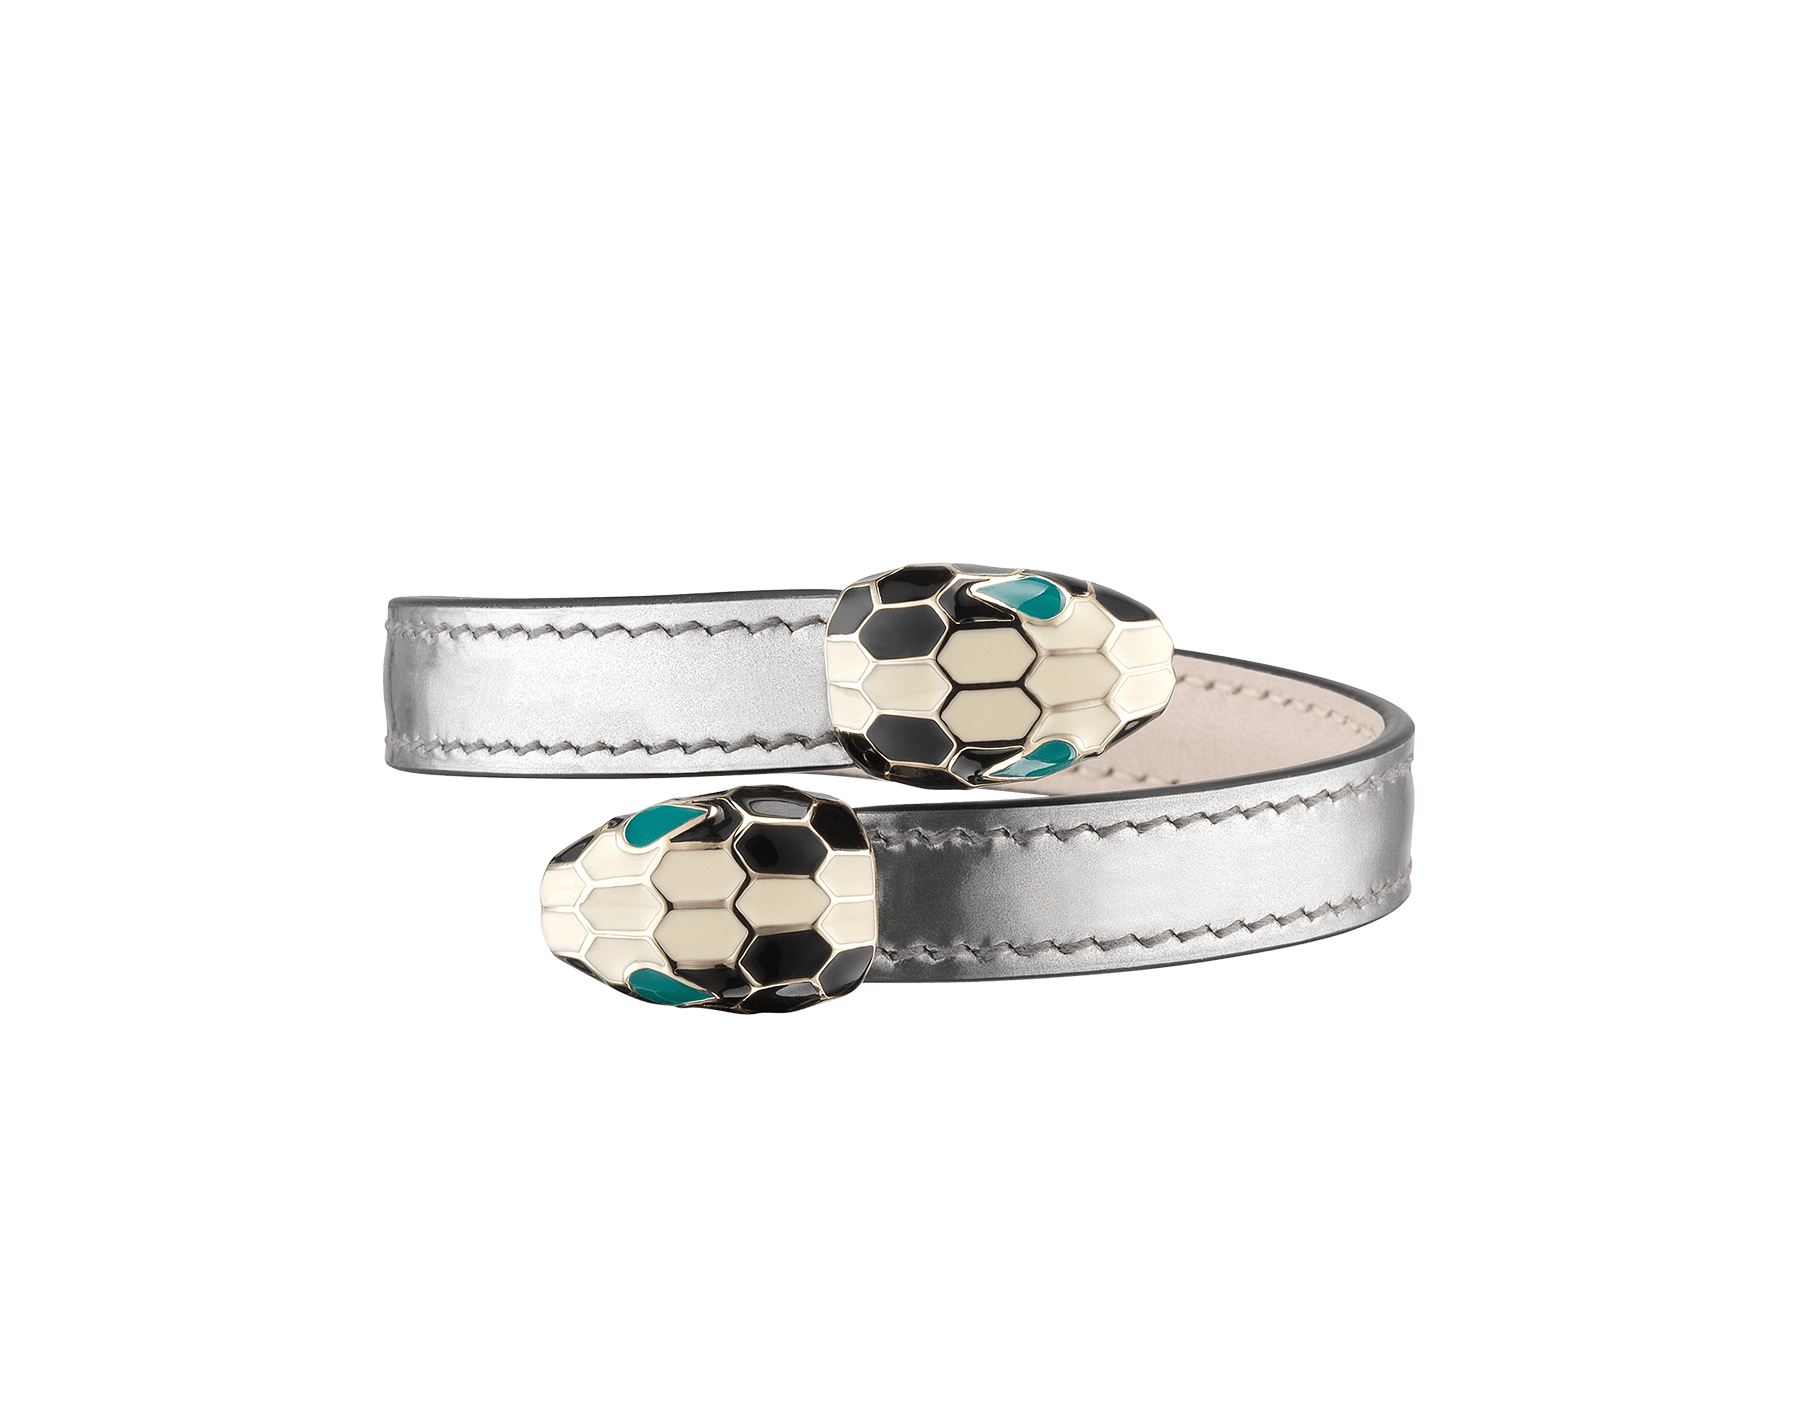 Serpenti Forever soft bangle bracelet in shiny silver brushed metallic calf leather, with brass light gold plated hardware. Iconic contraire snakehead décor in black and white enamel, with green enamel eyes. SerpSoftContr-BMCL-S image 1